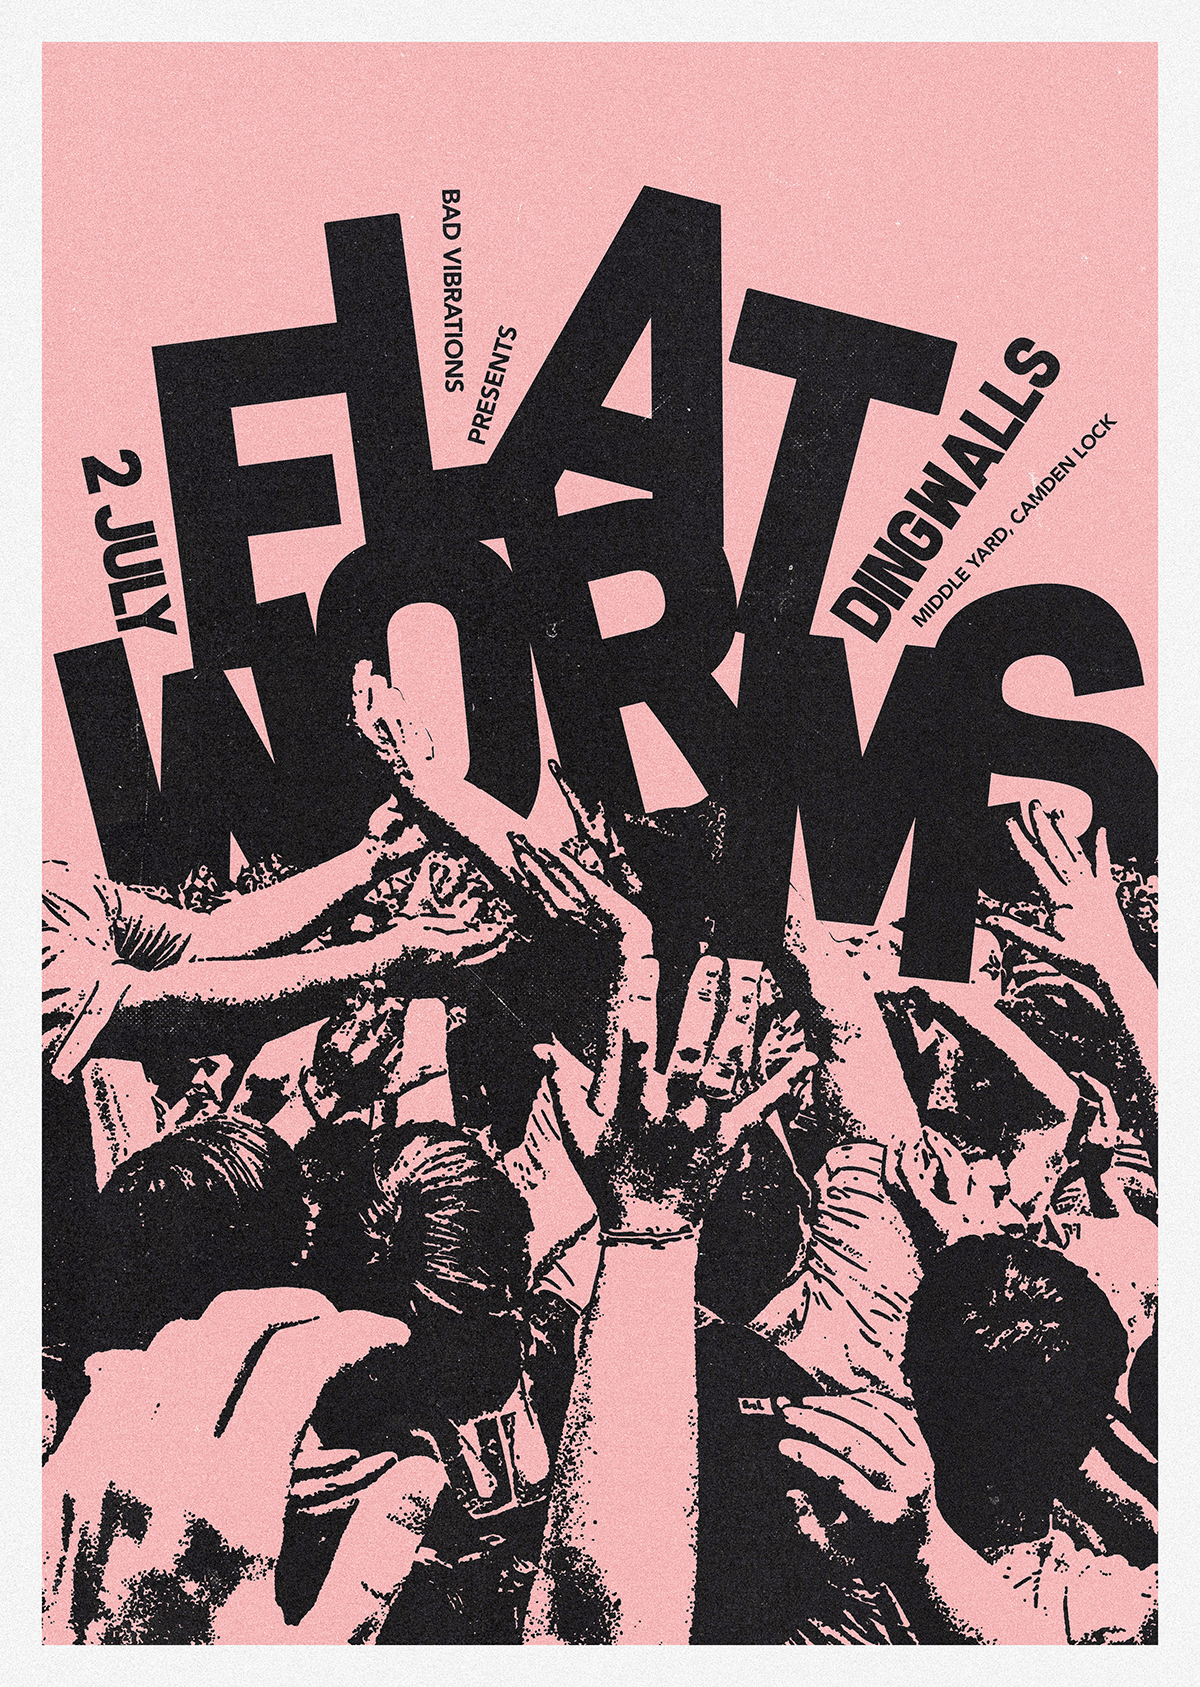 2nd_July_Bad_Vibrations_Flat_Worms_Olya_Dyer_gig_poster.png